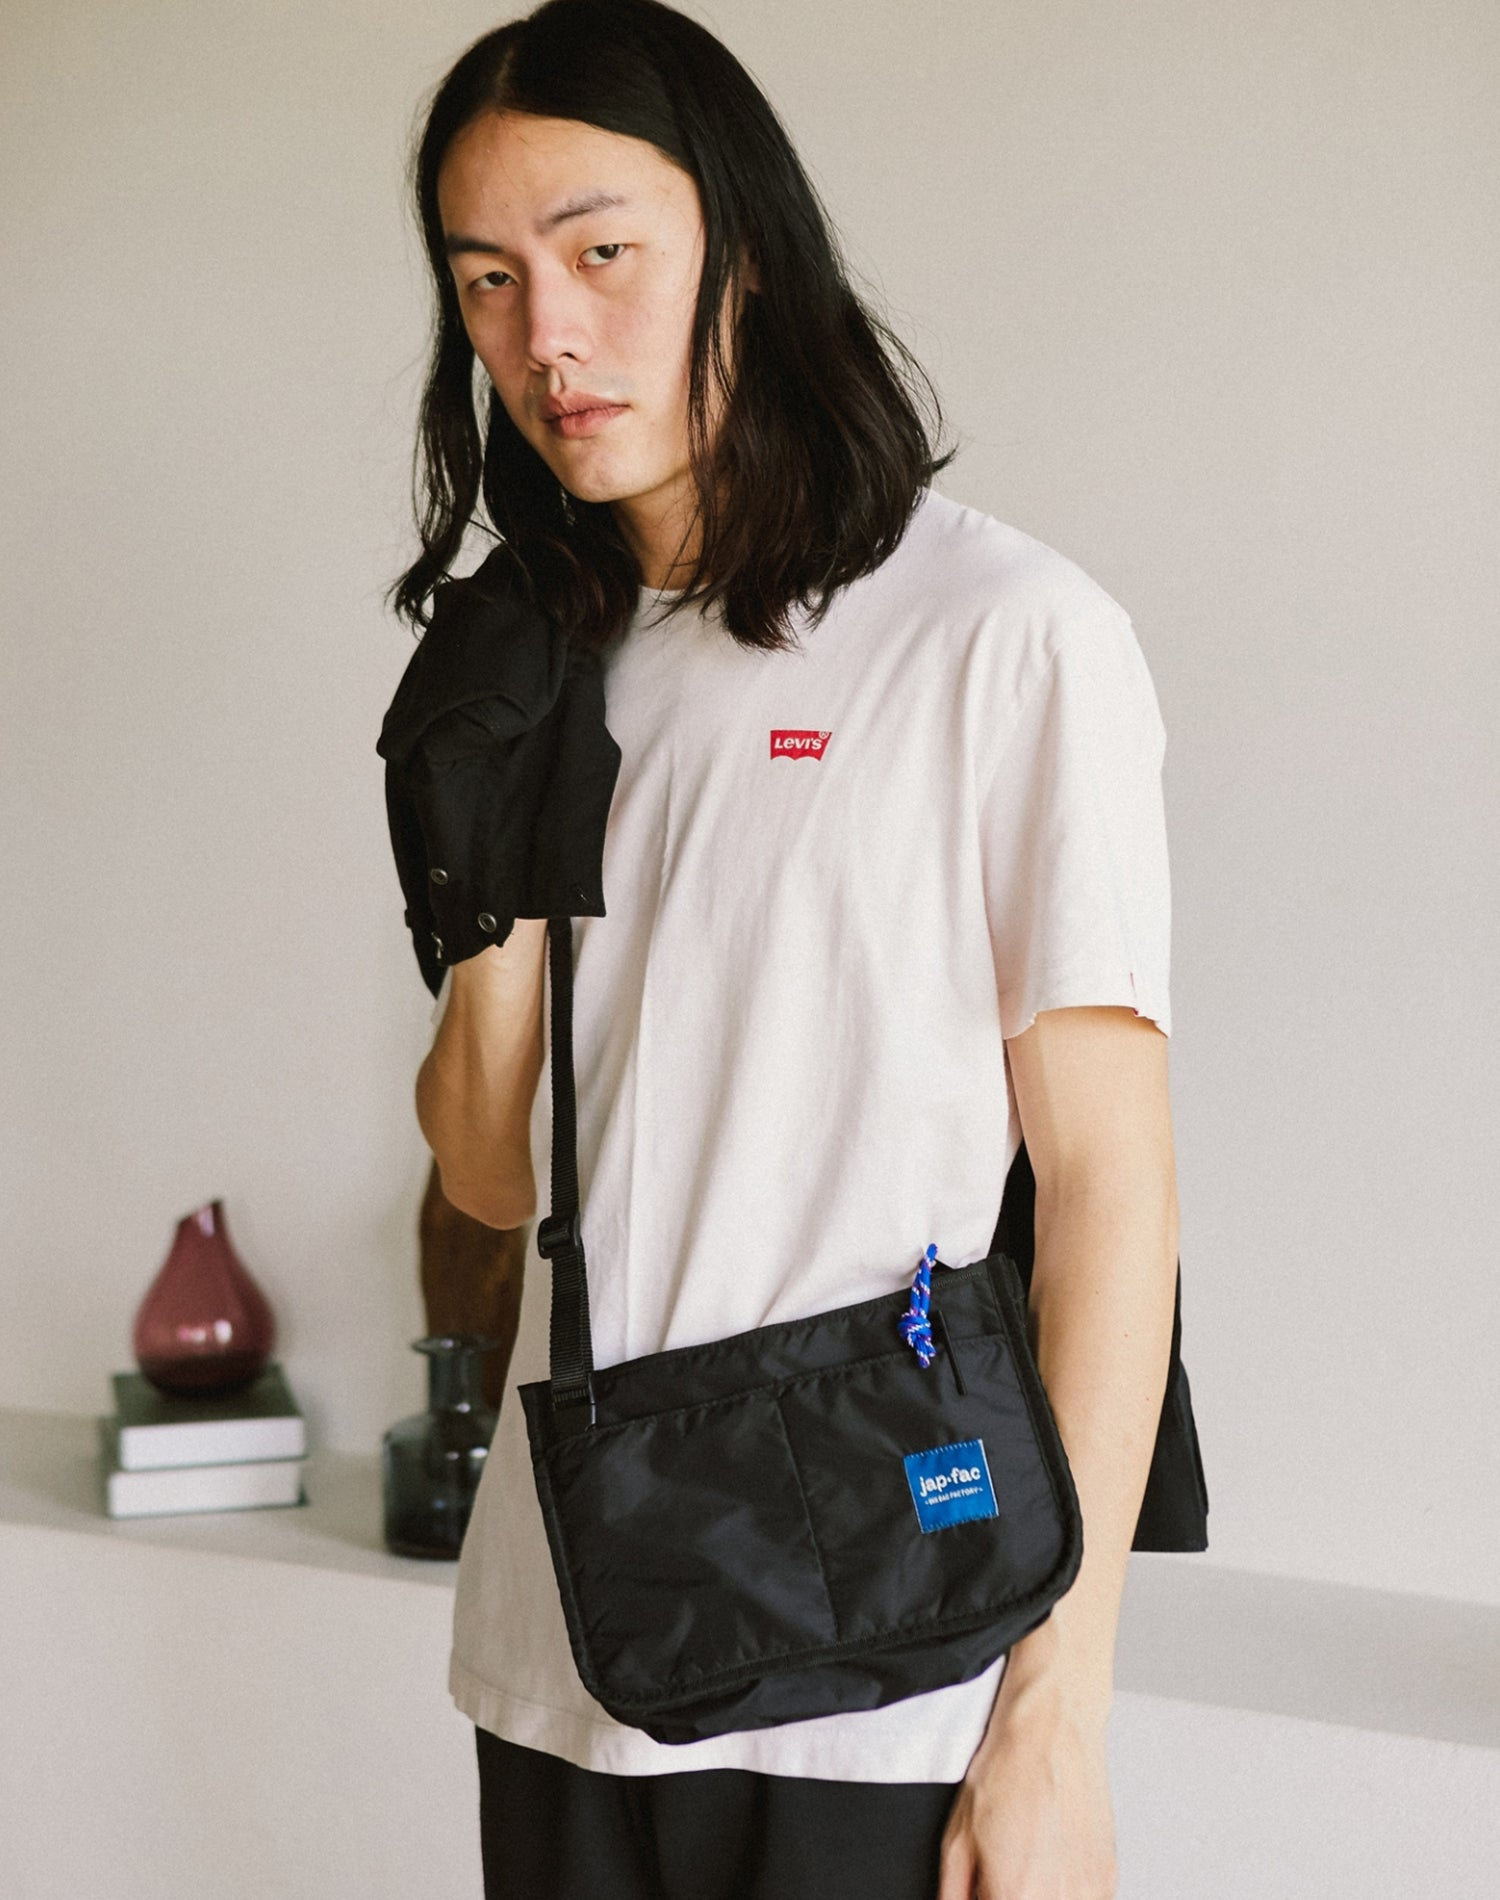 Black Candy Waterproof Nylon Shoulder Bag.黑色防水尼龍單肩斜挎袋